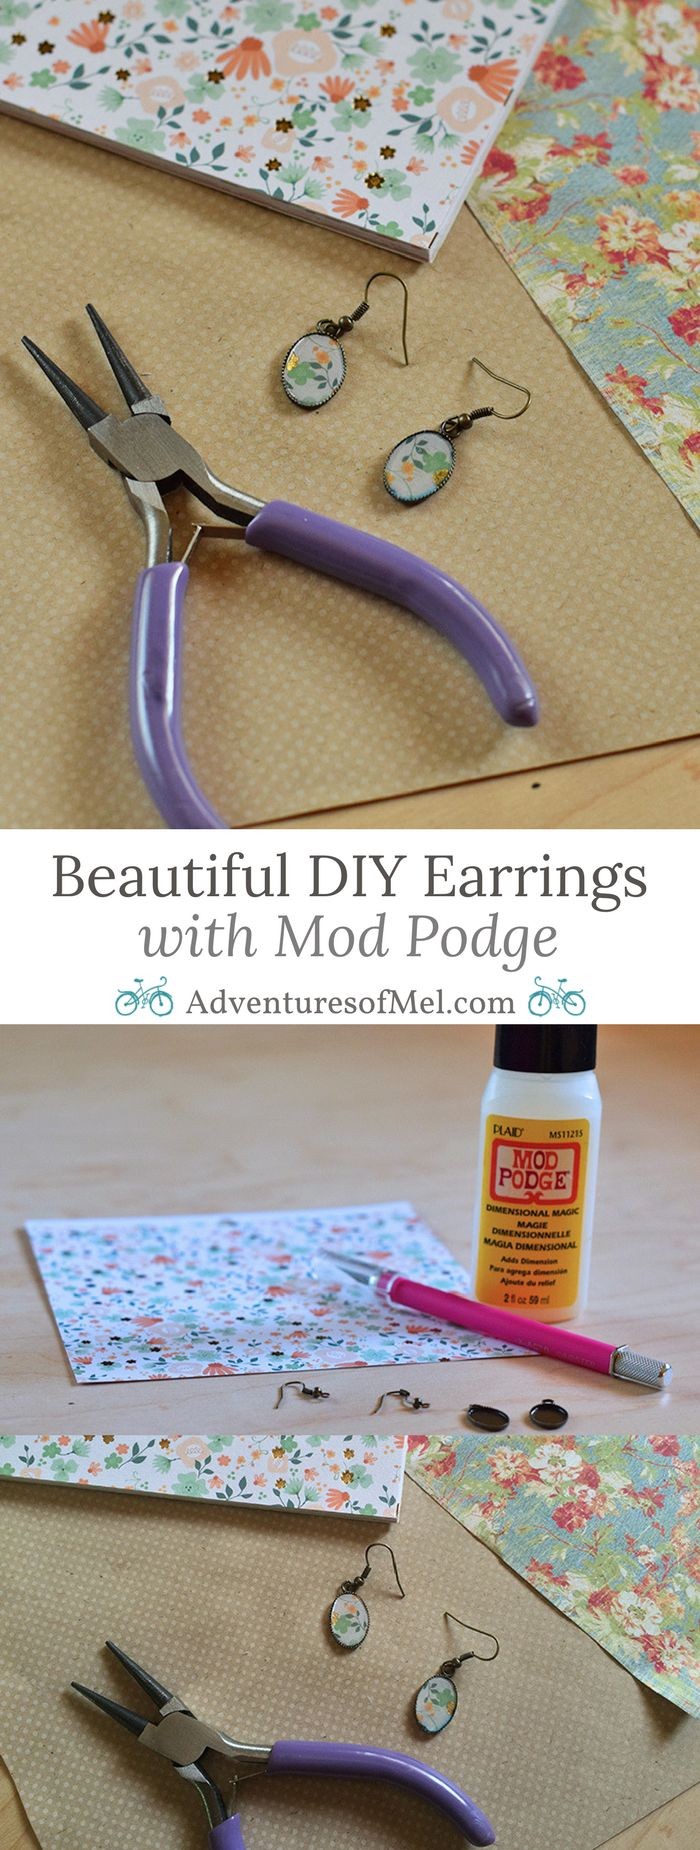 How to make scrapbook paper - How To Make Beautiful Diy Earrings With Mod Podge